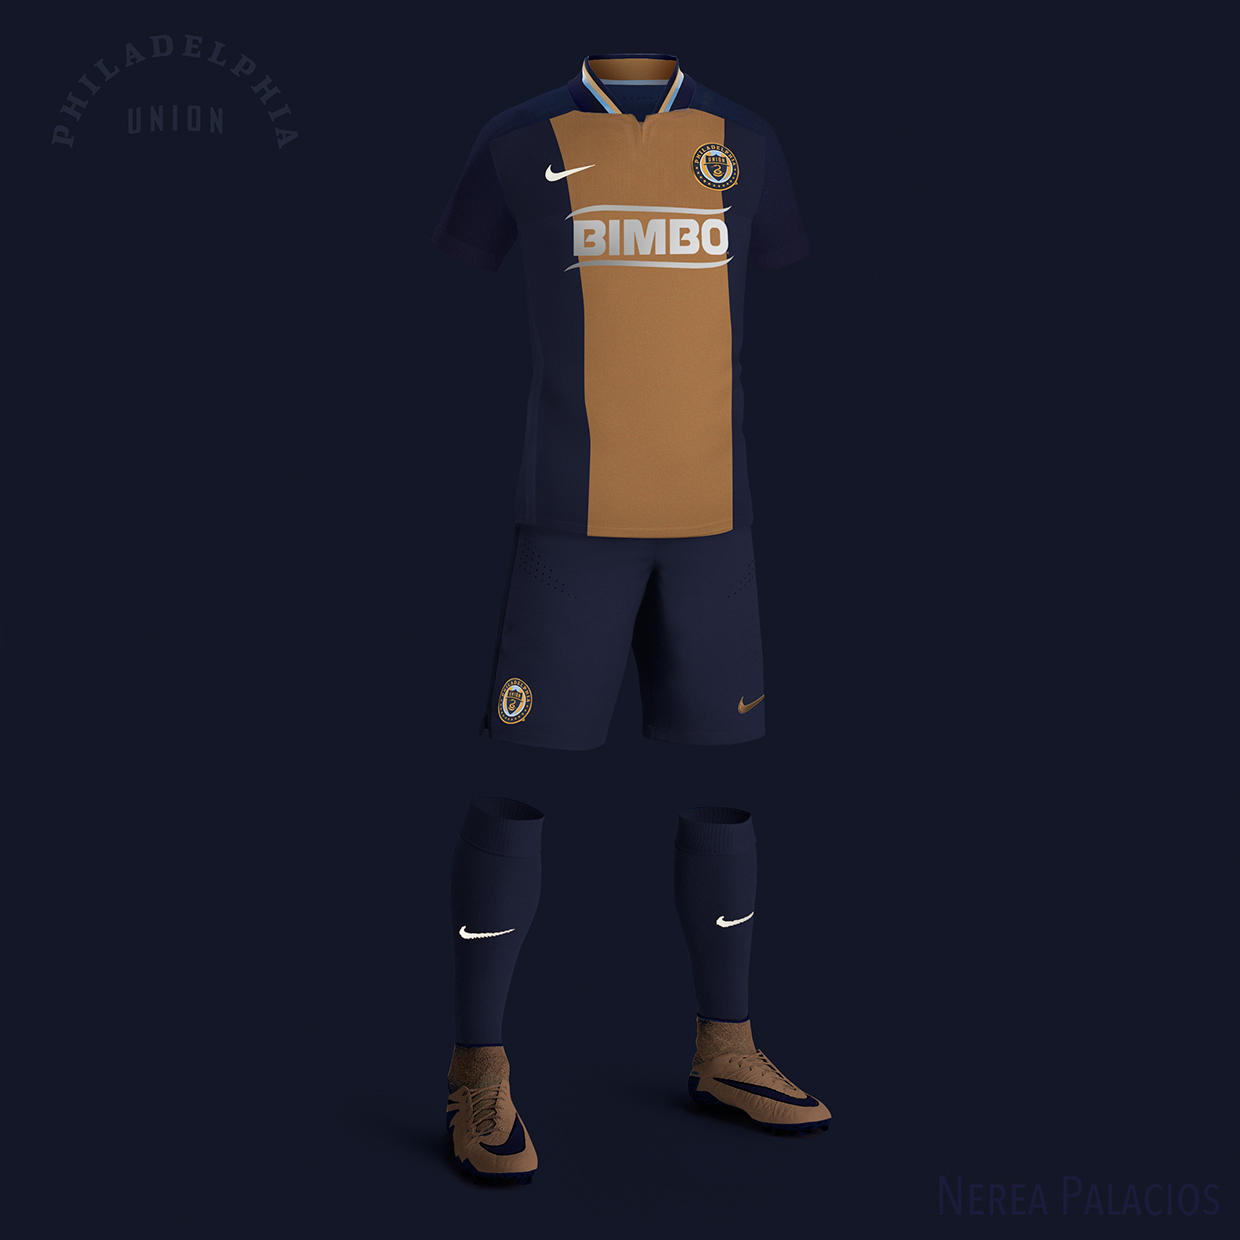 newest ca63e 9eaf3 What if MLS clubs switched jerseys from adidas to Nike ...